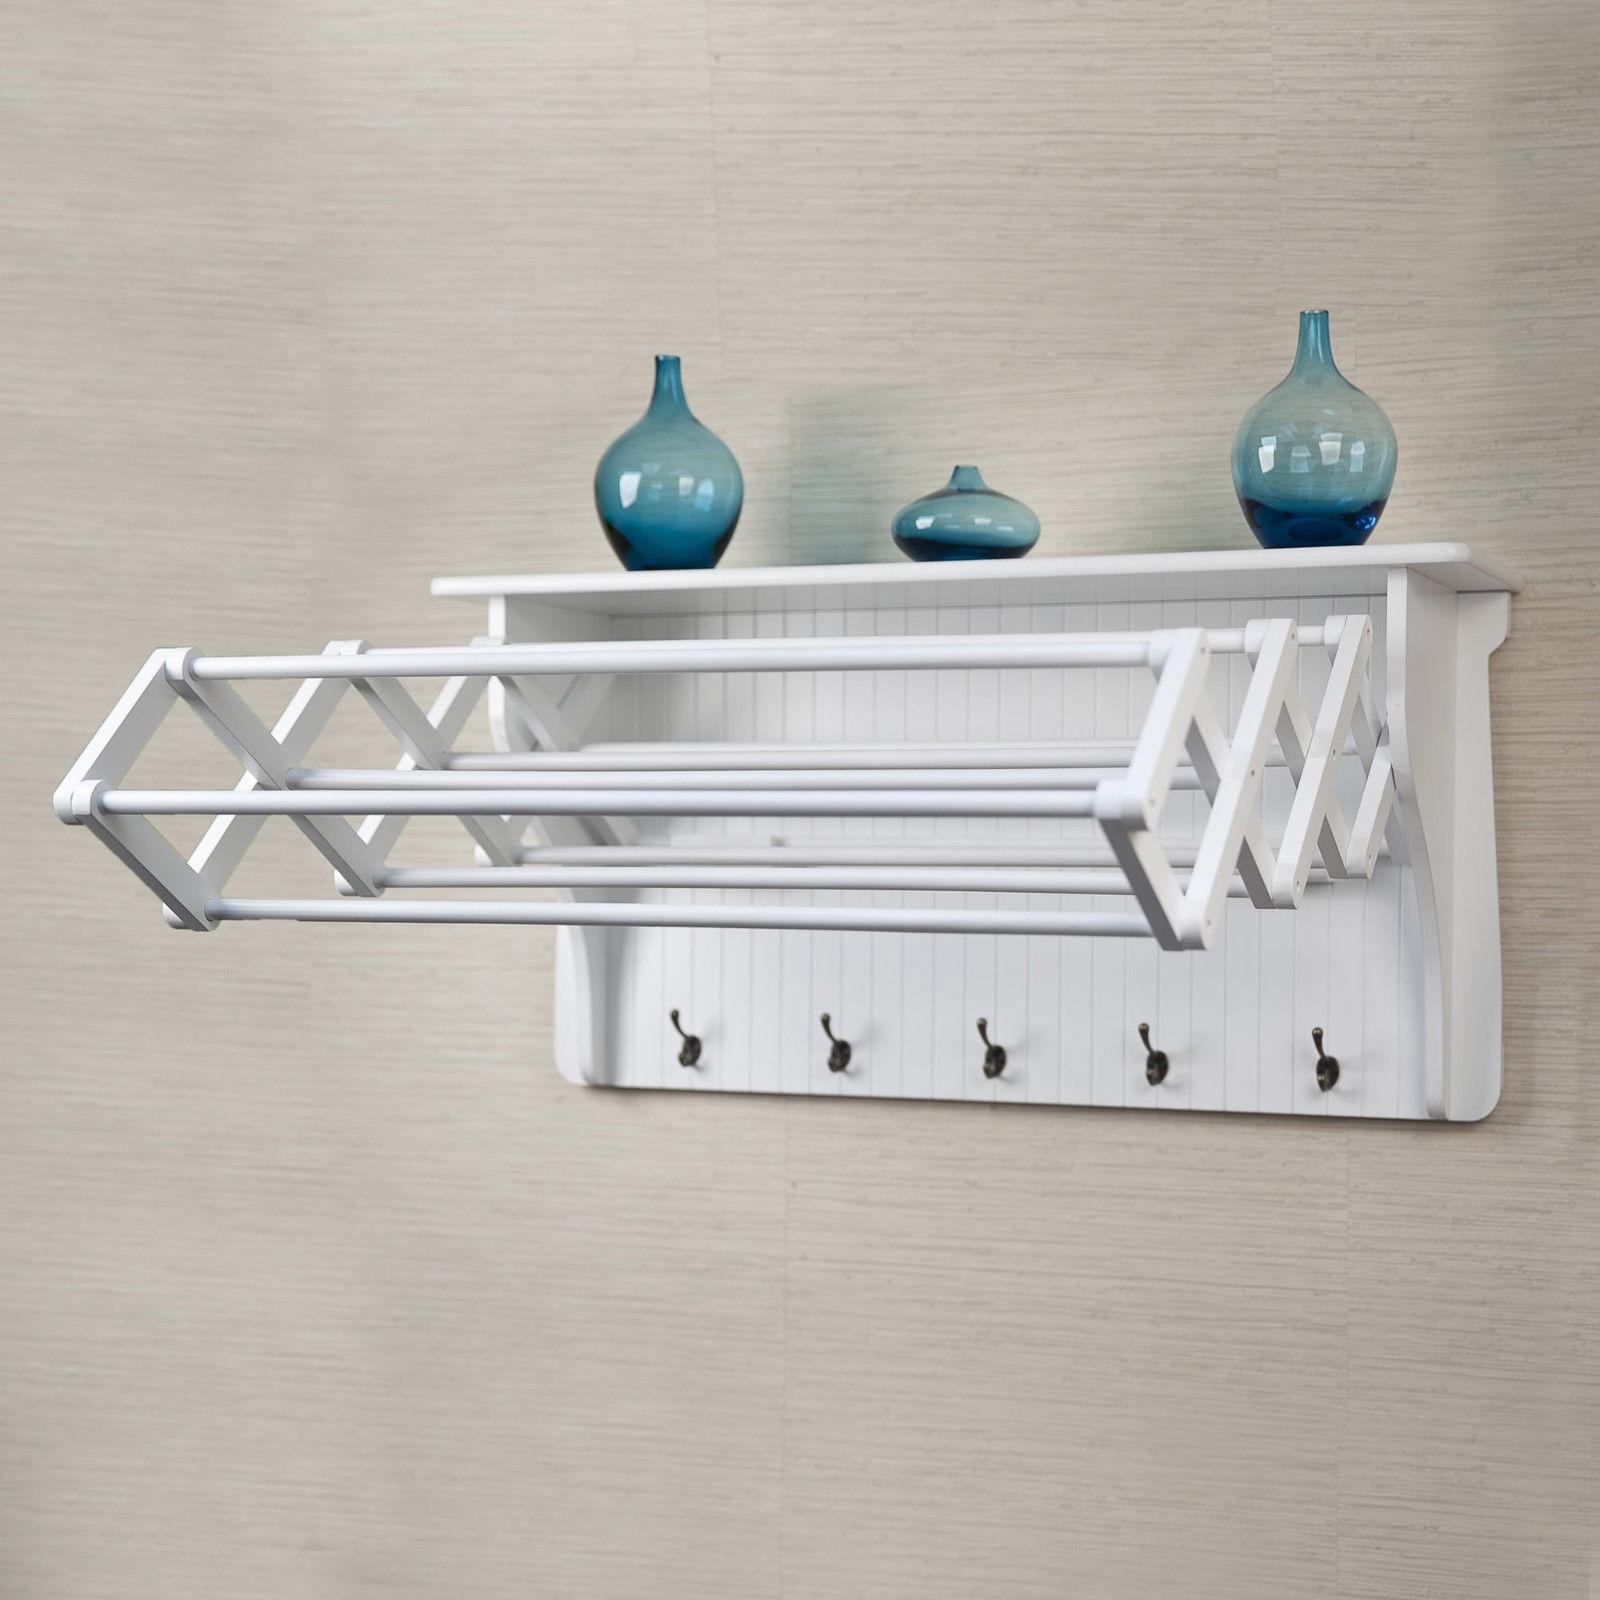 wall mounted drying rack collapsible clothes towel